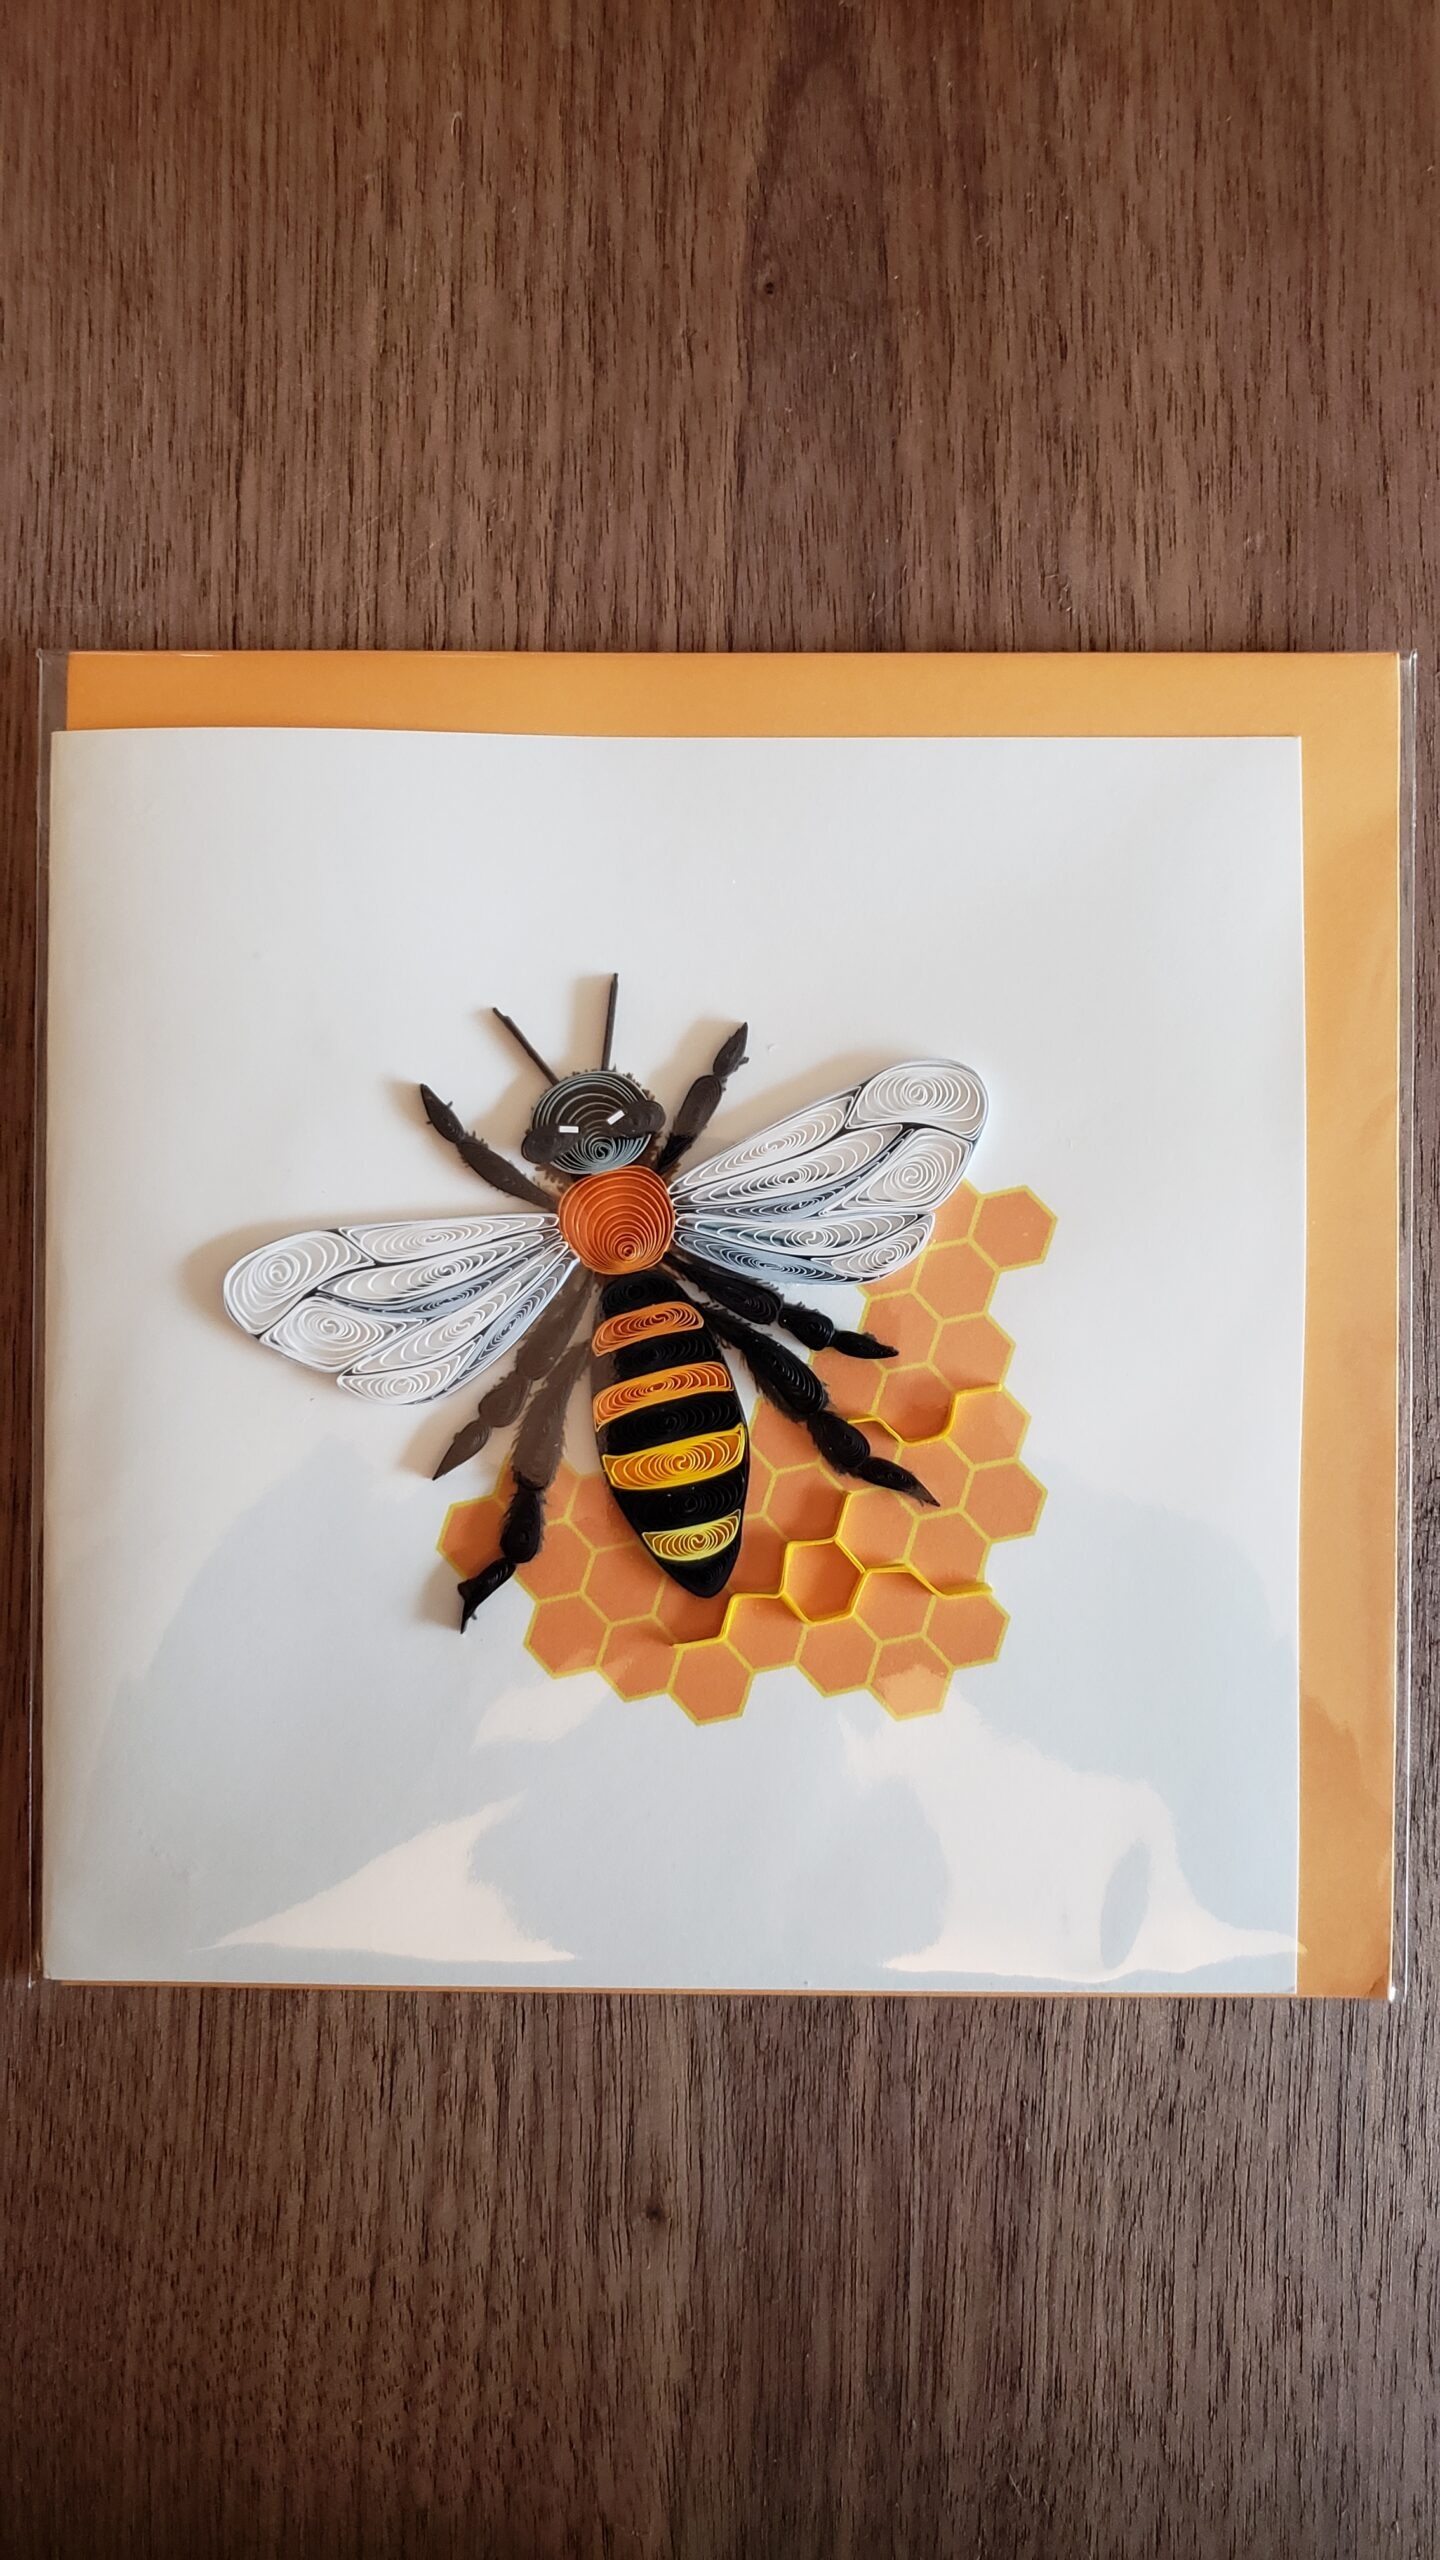 Honey Bee Greeting Card 6 in. x 6 in.